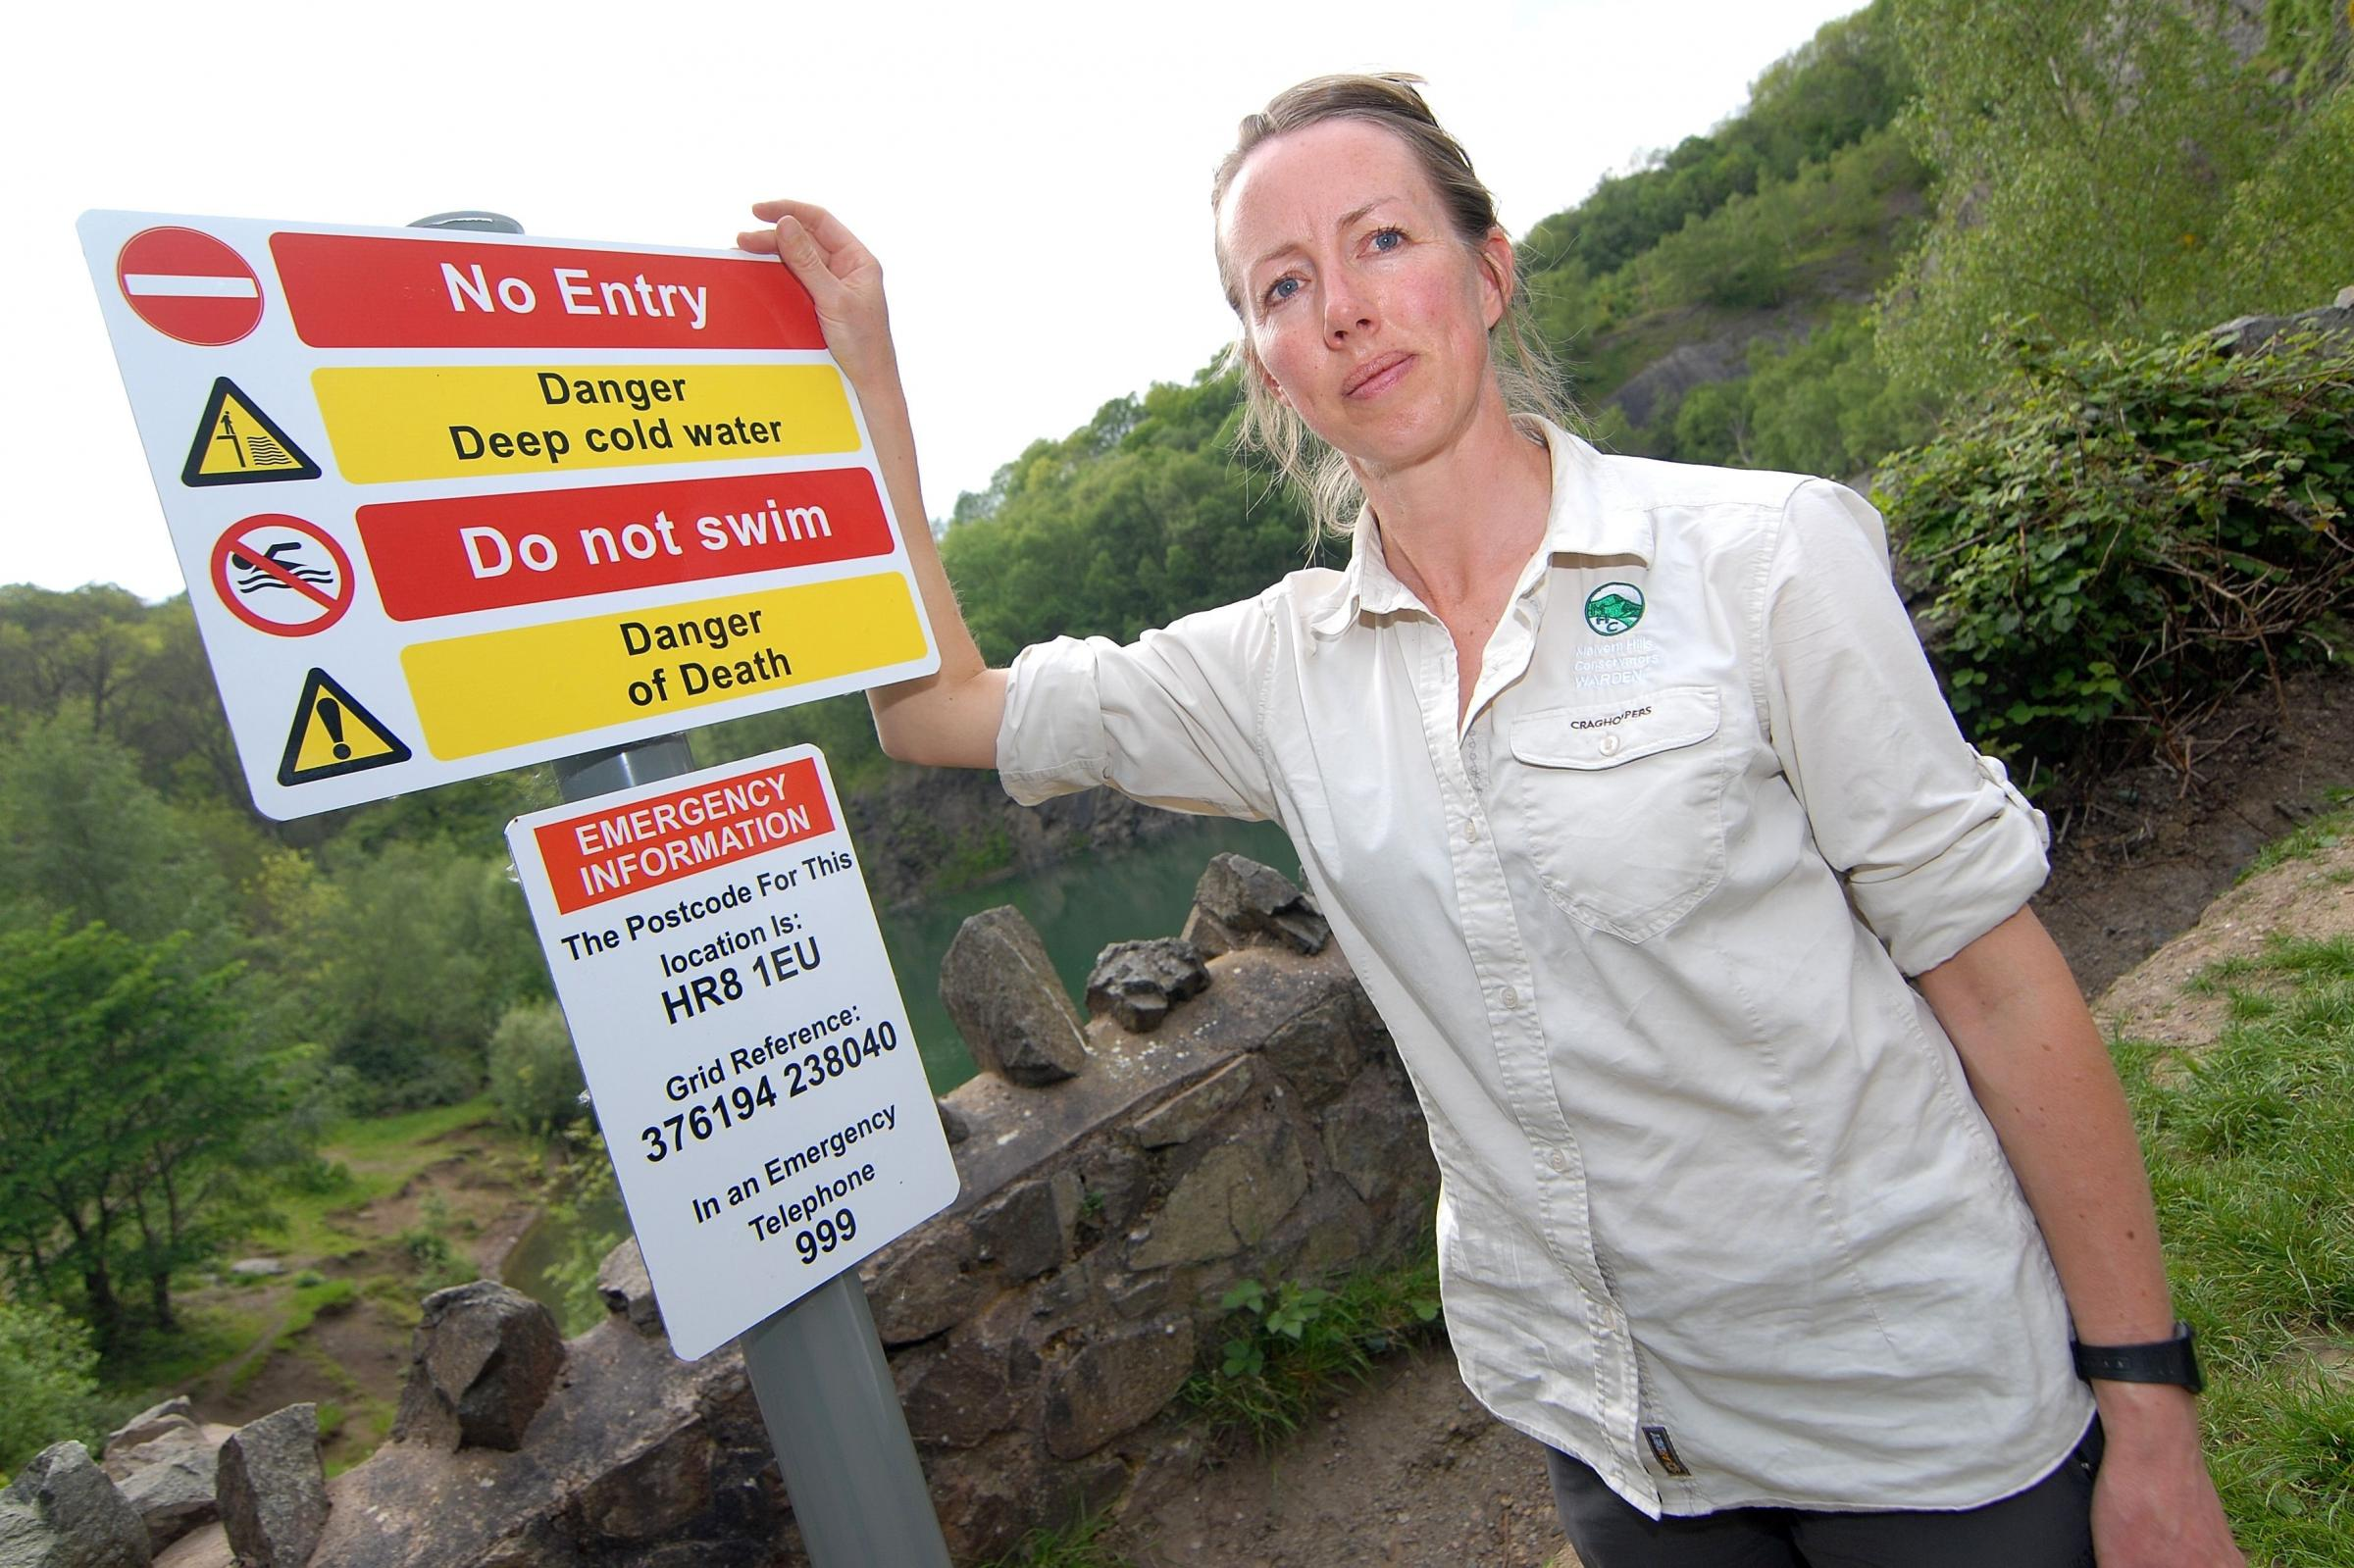 Safety campaign deters visitors to death lake quarry in the Malvern Hills